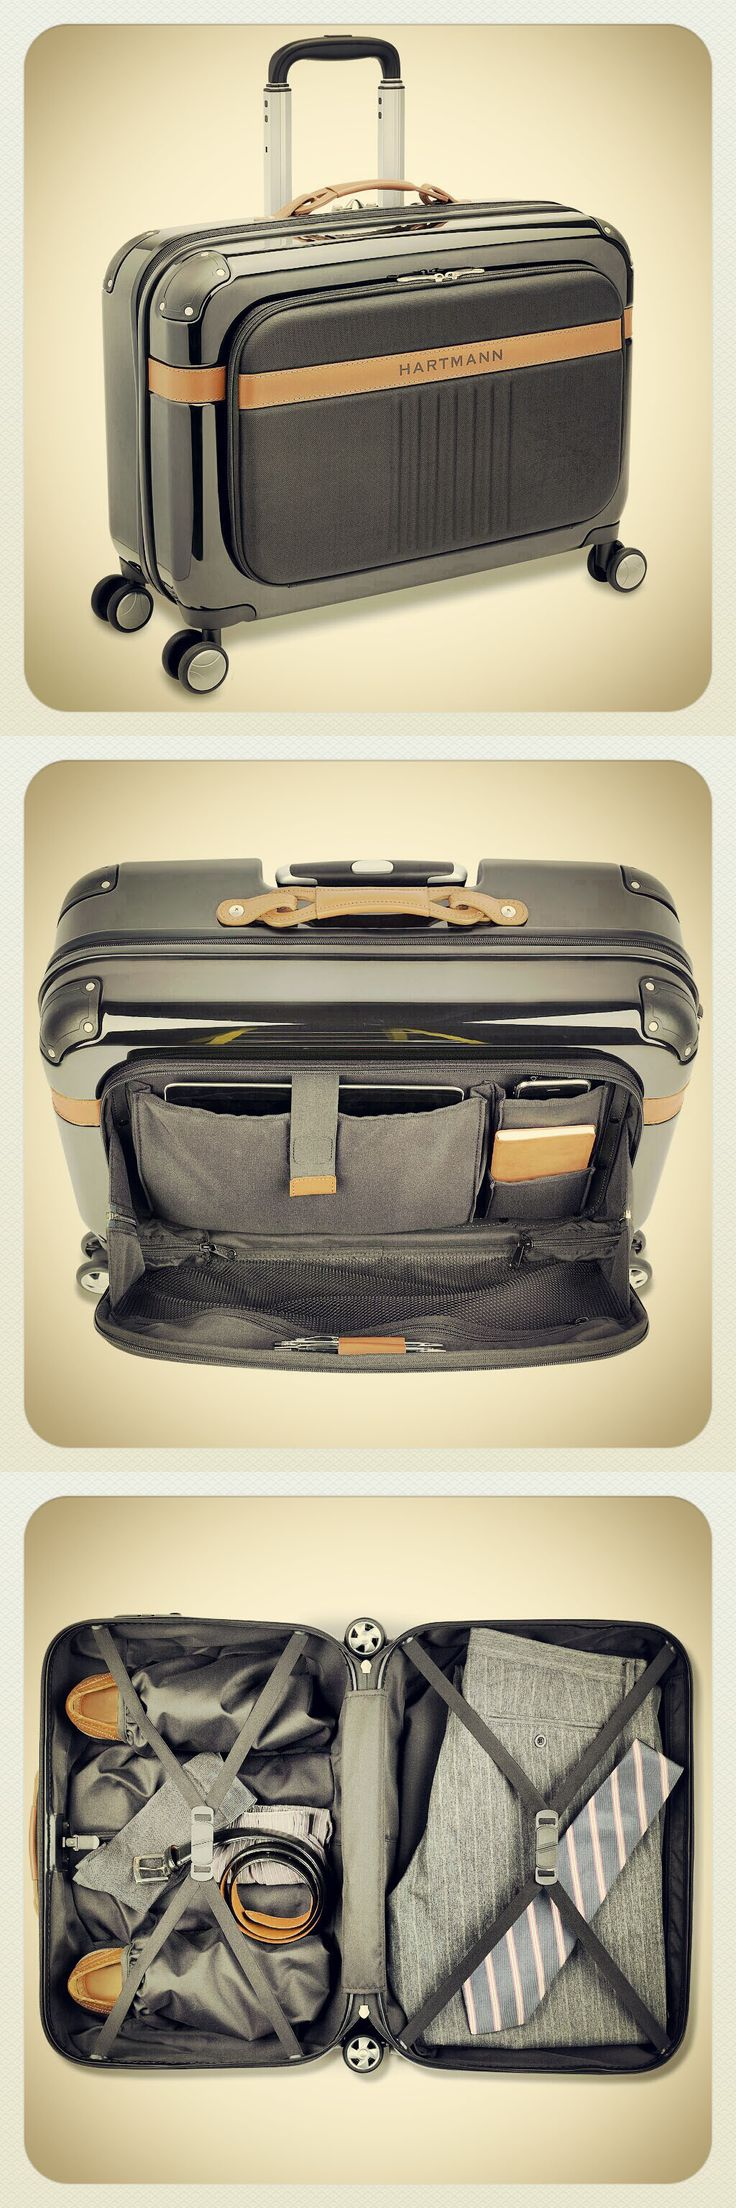 PC4 Expandable Garment Bag Spinner! Featuring dual interior compartments, shoe pockets, removable travel kit, and professional organizer.